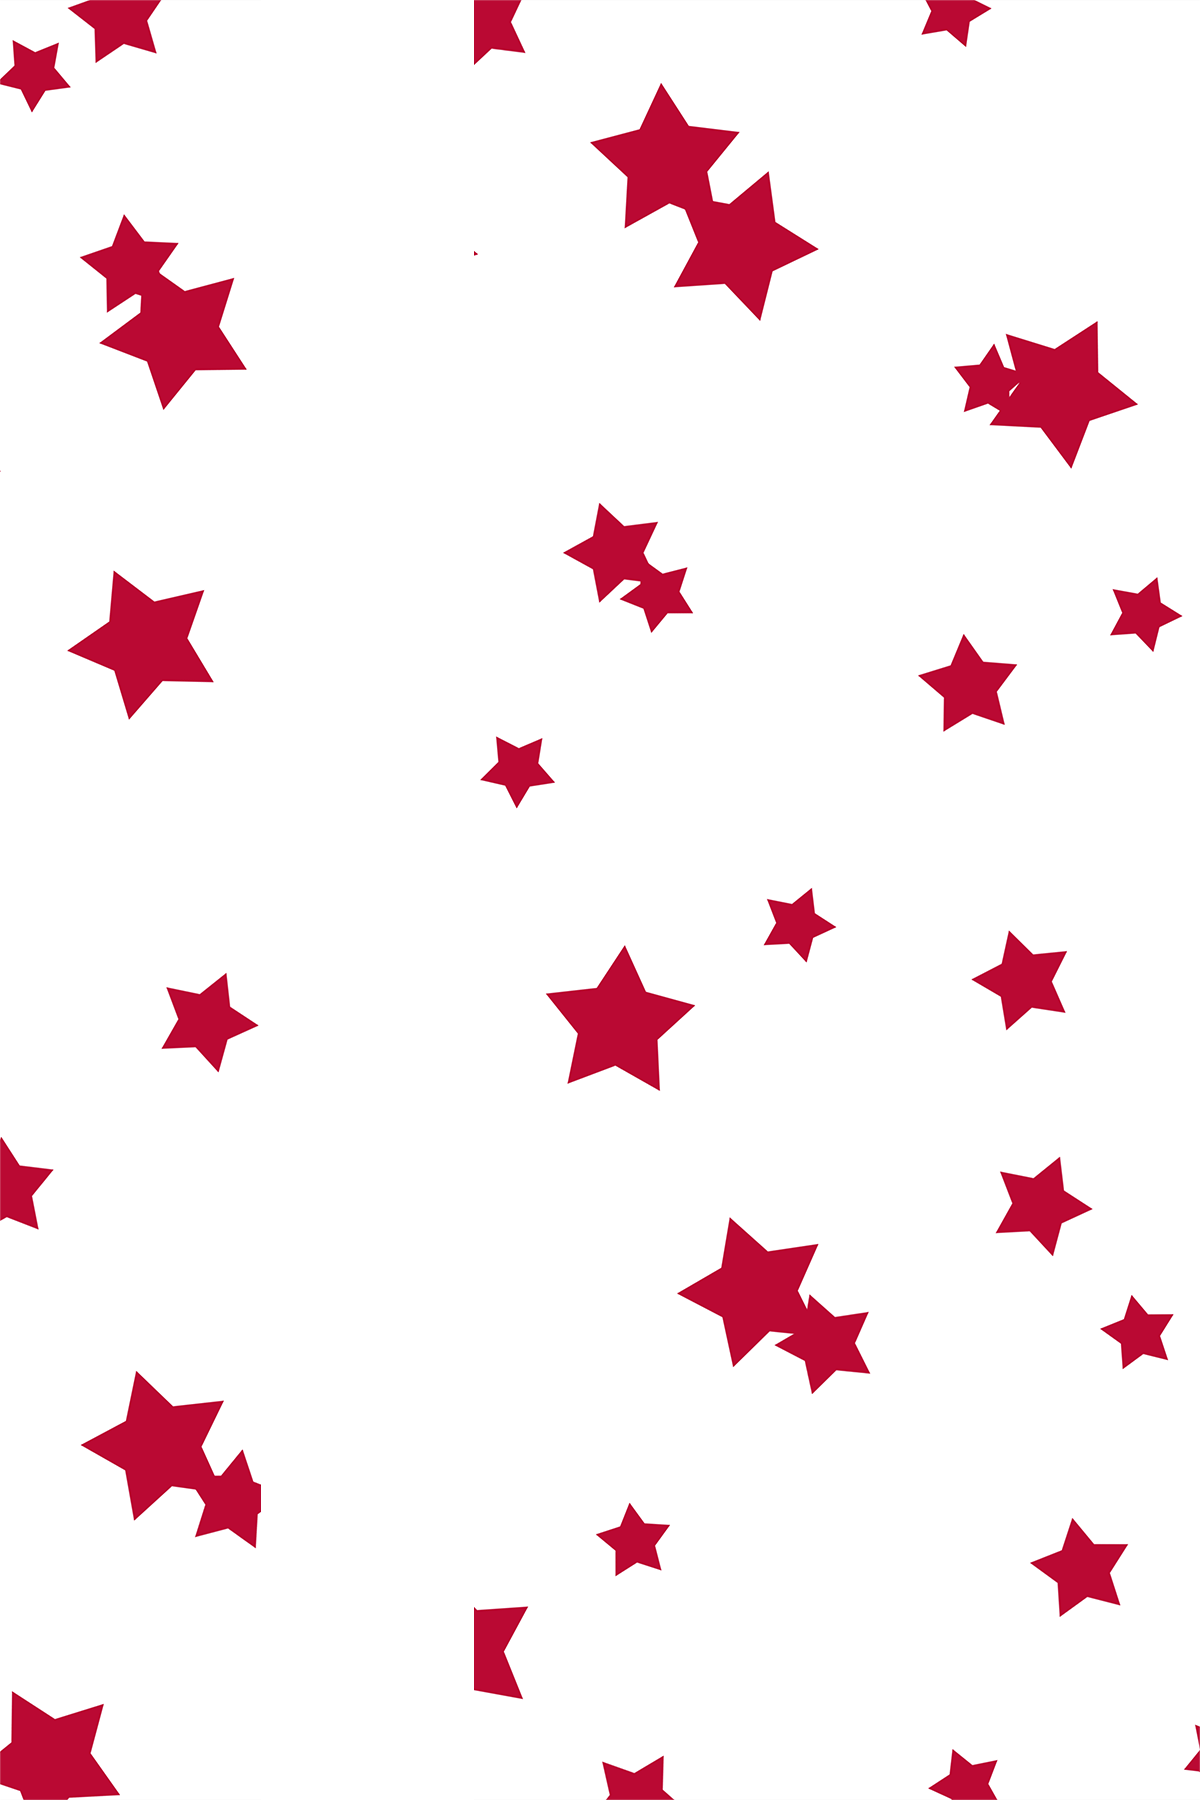 15 Five Red Stars Png No Background Background Check Logos Background